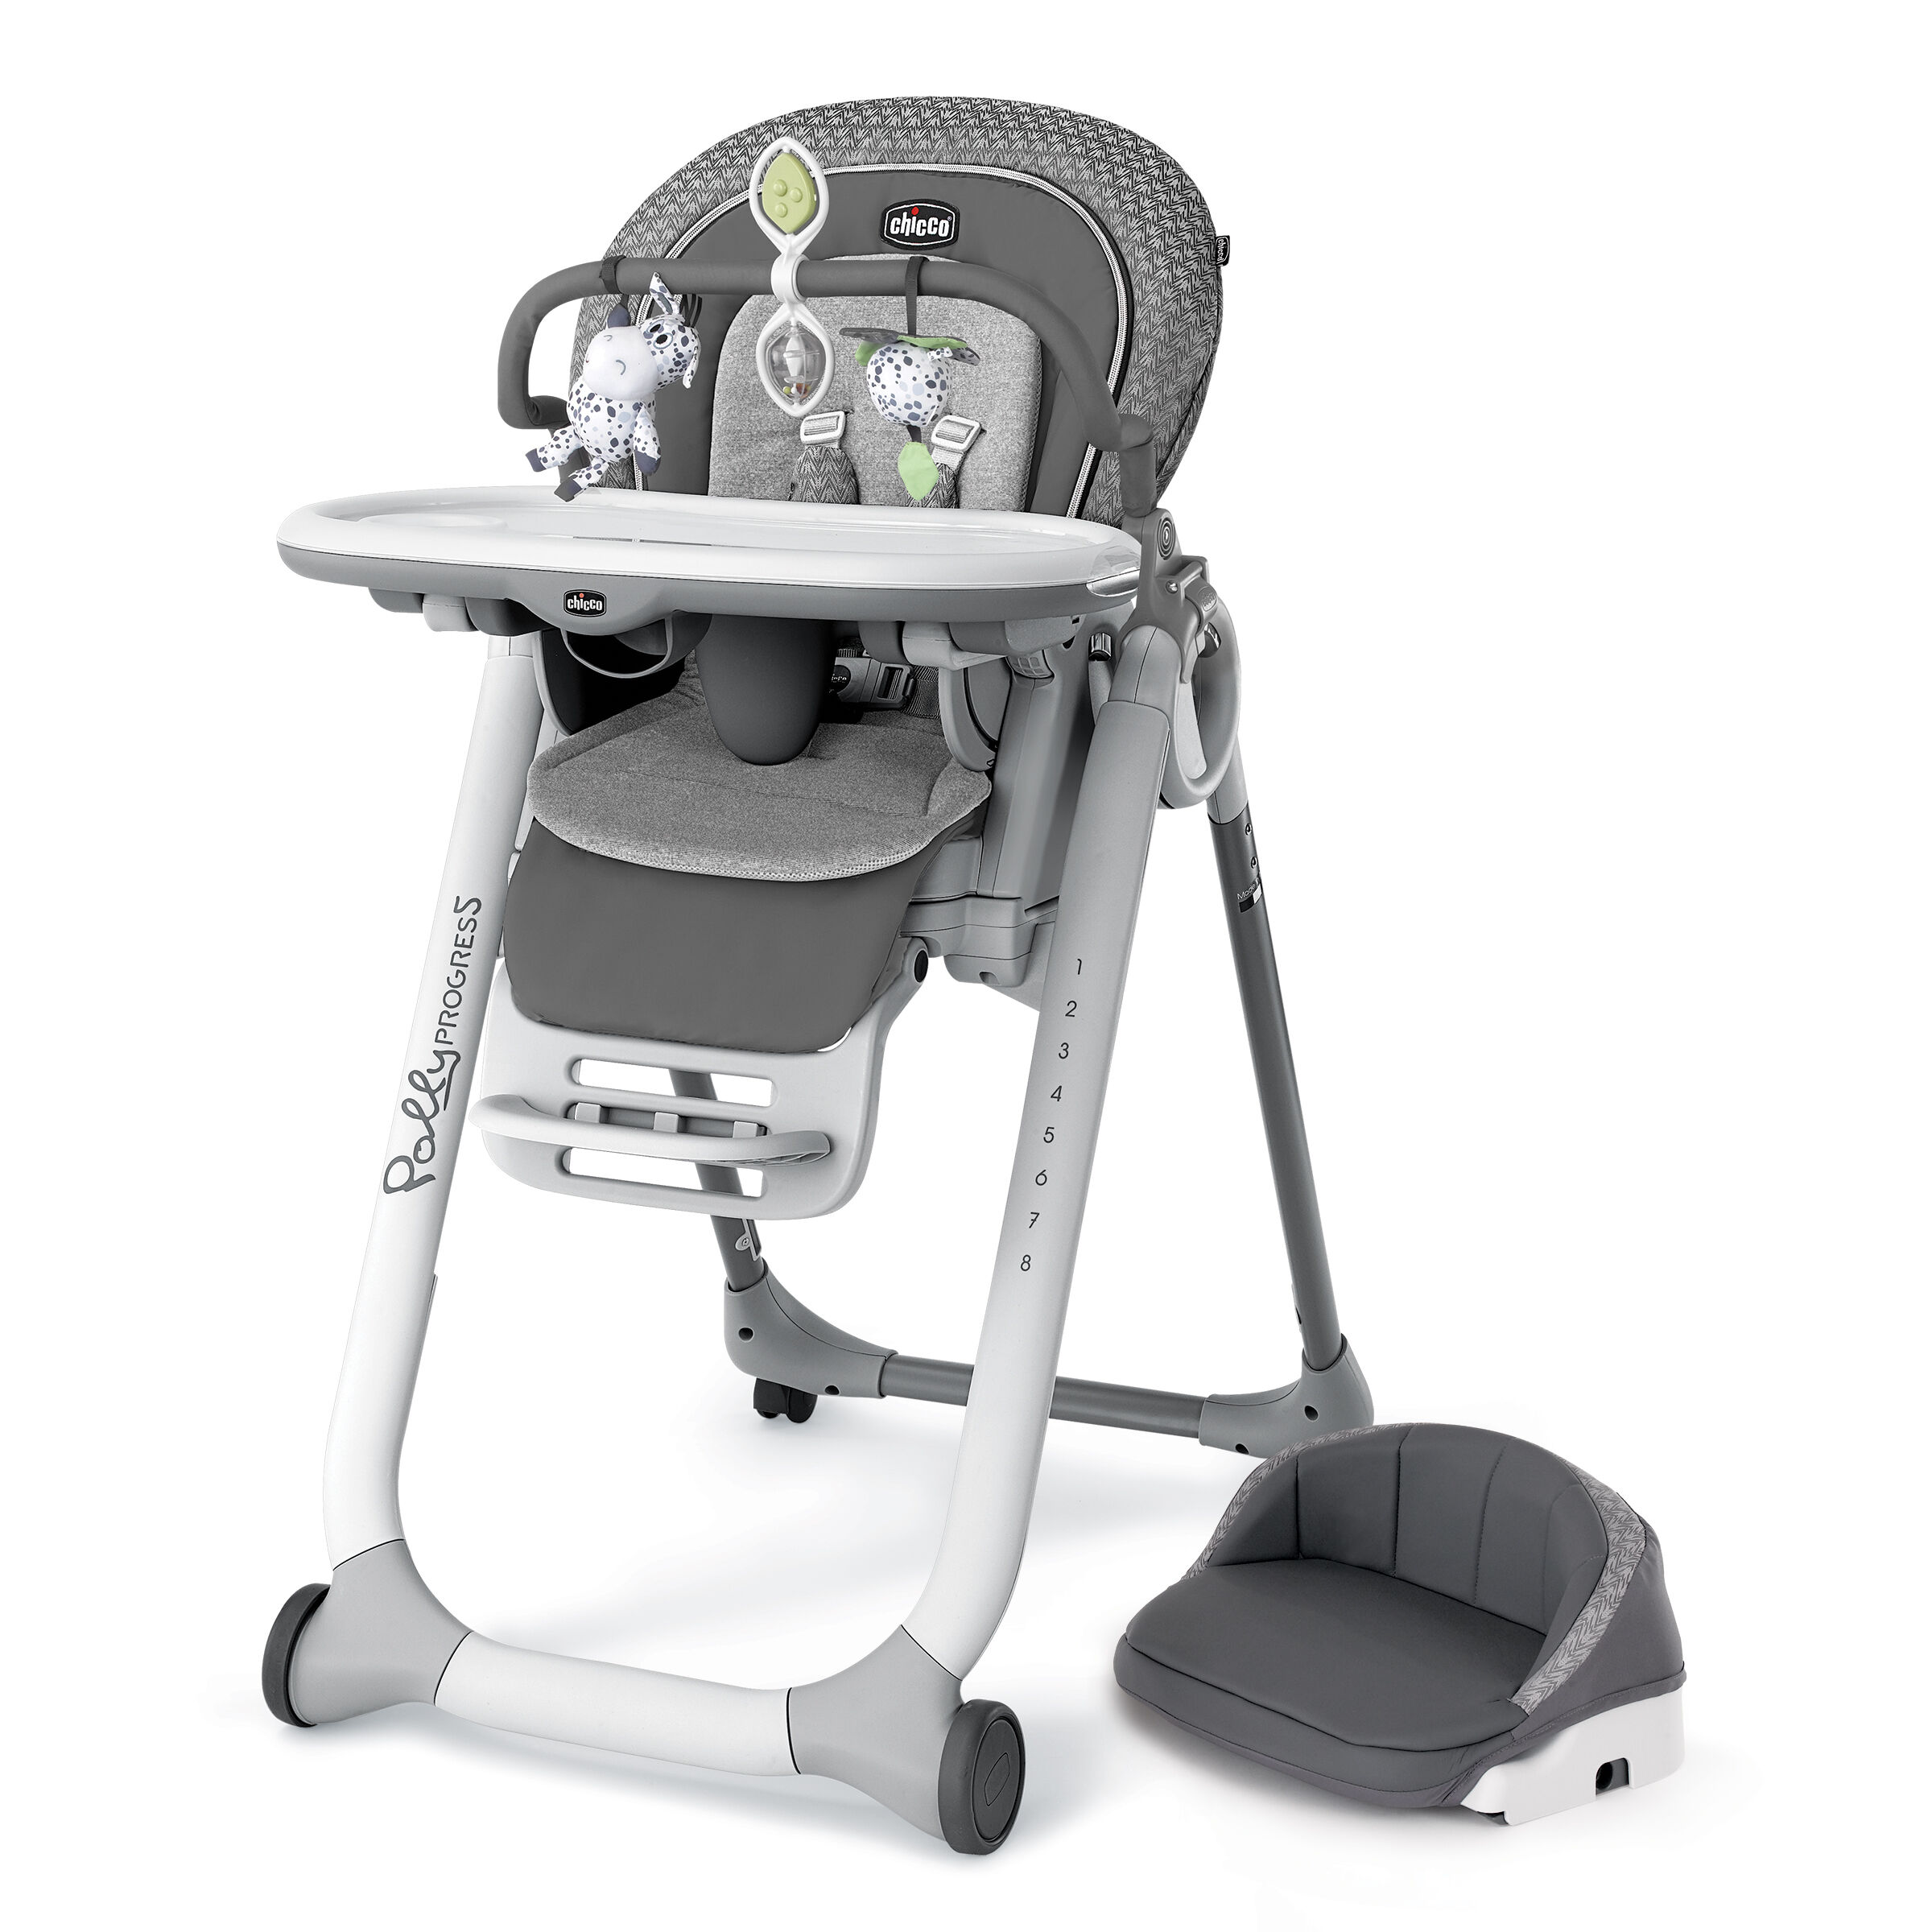 bag high chair wheelchair store chicco polly progress relax highchair silhouette